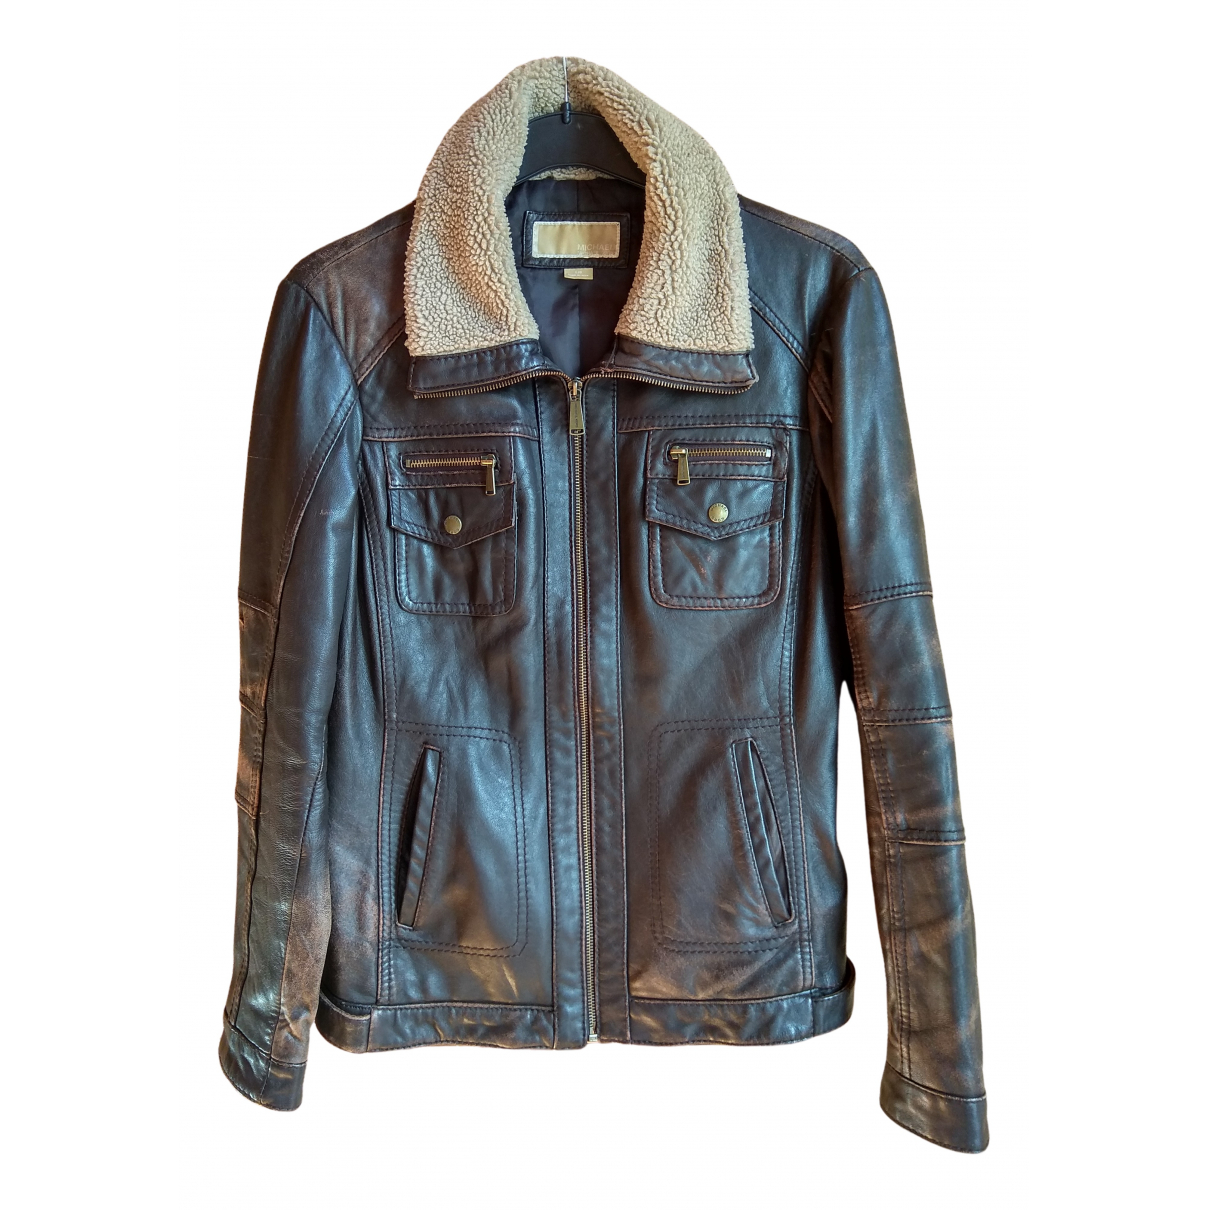 Michael Kors N Brown Leather Leather jacket for Women L International